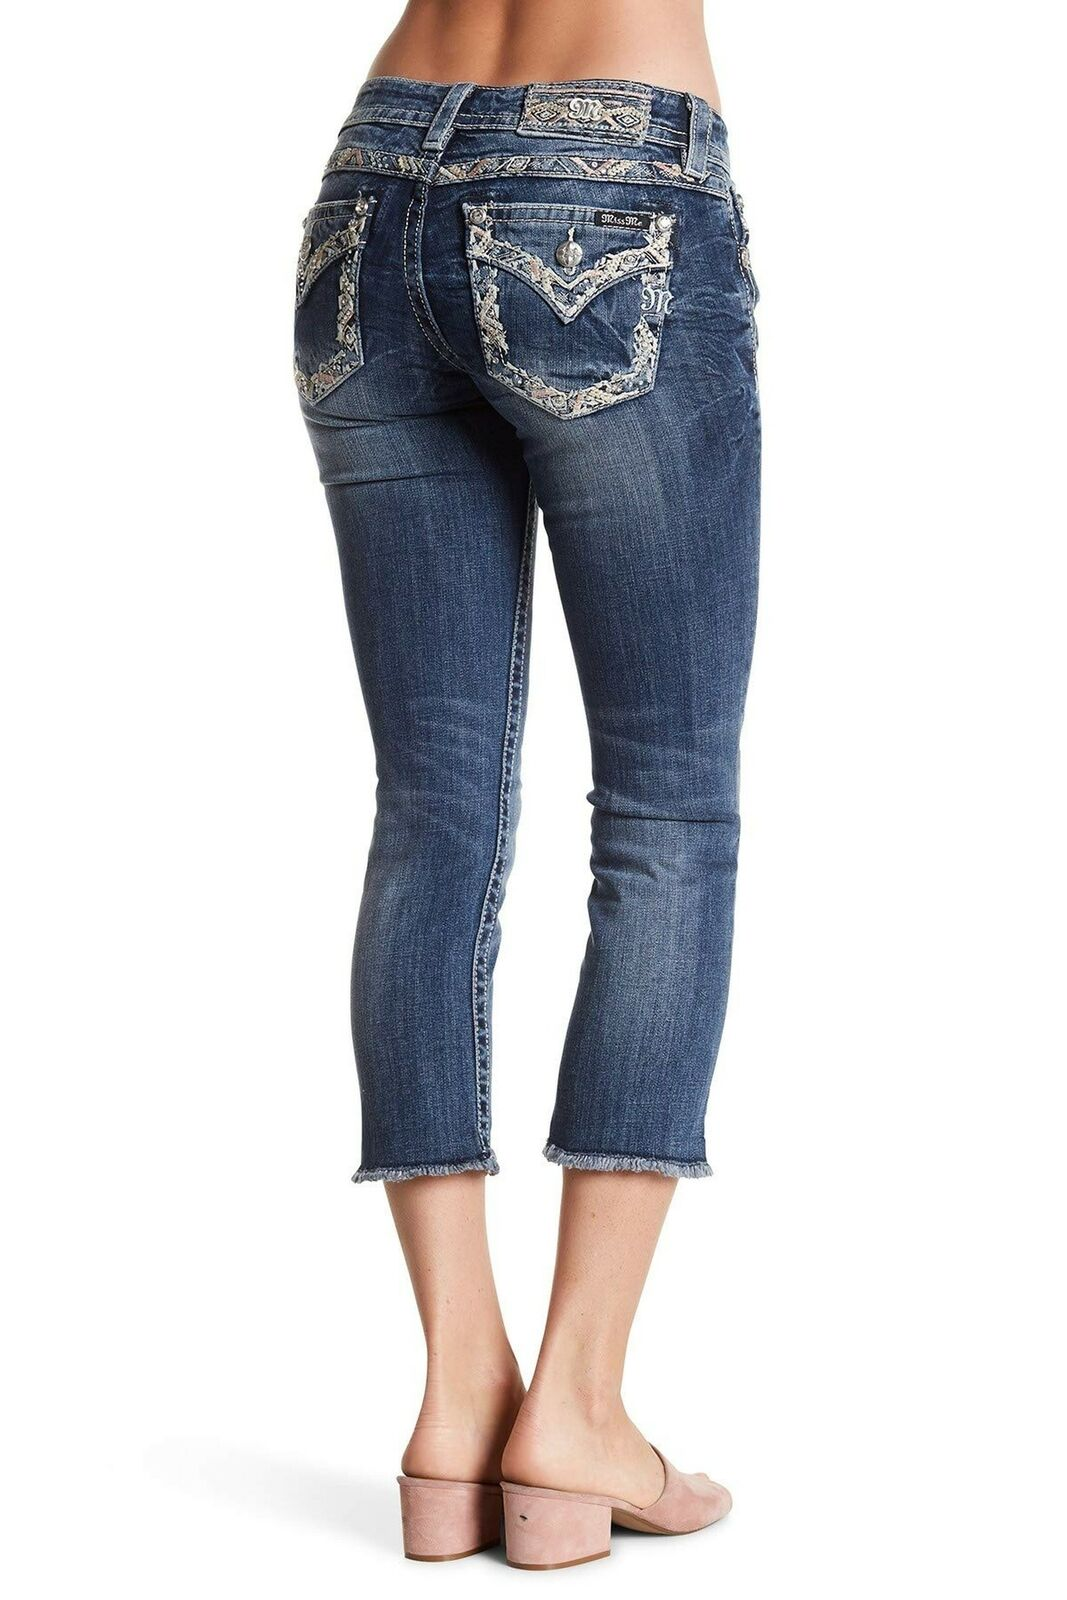 Miss Me Women's Signature Embellished Cropped Jeans (Medium bluee, 22)